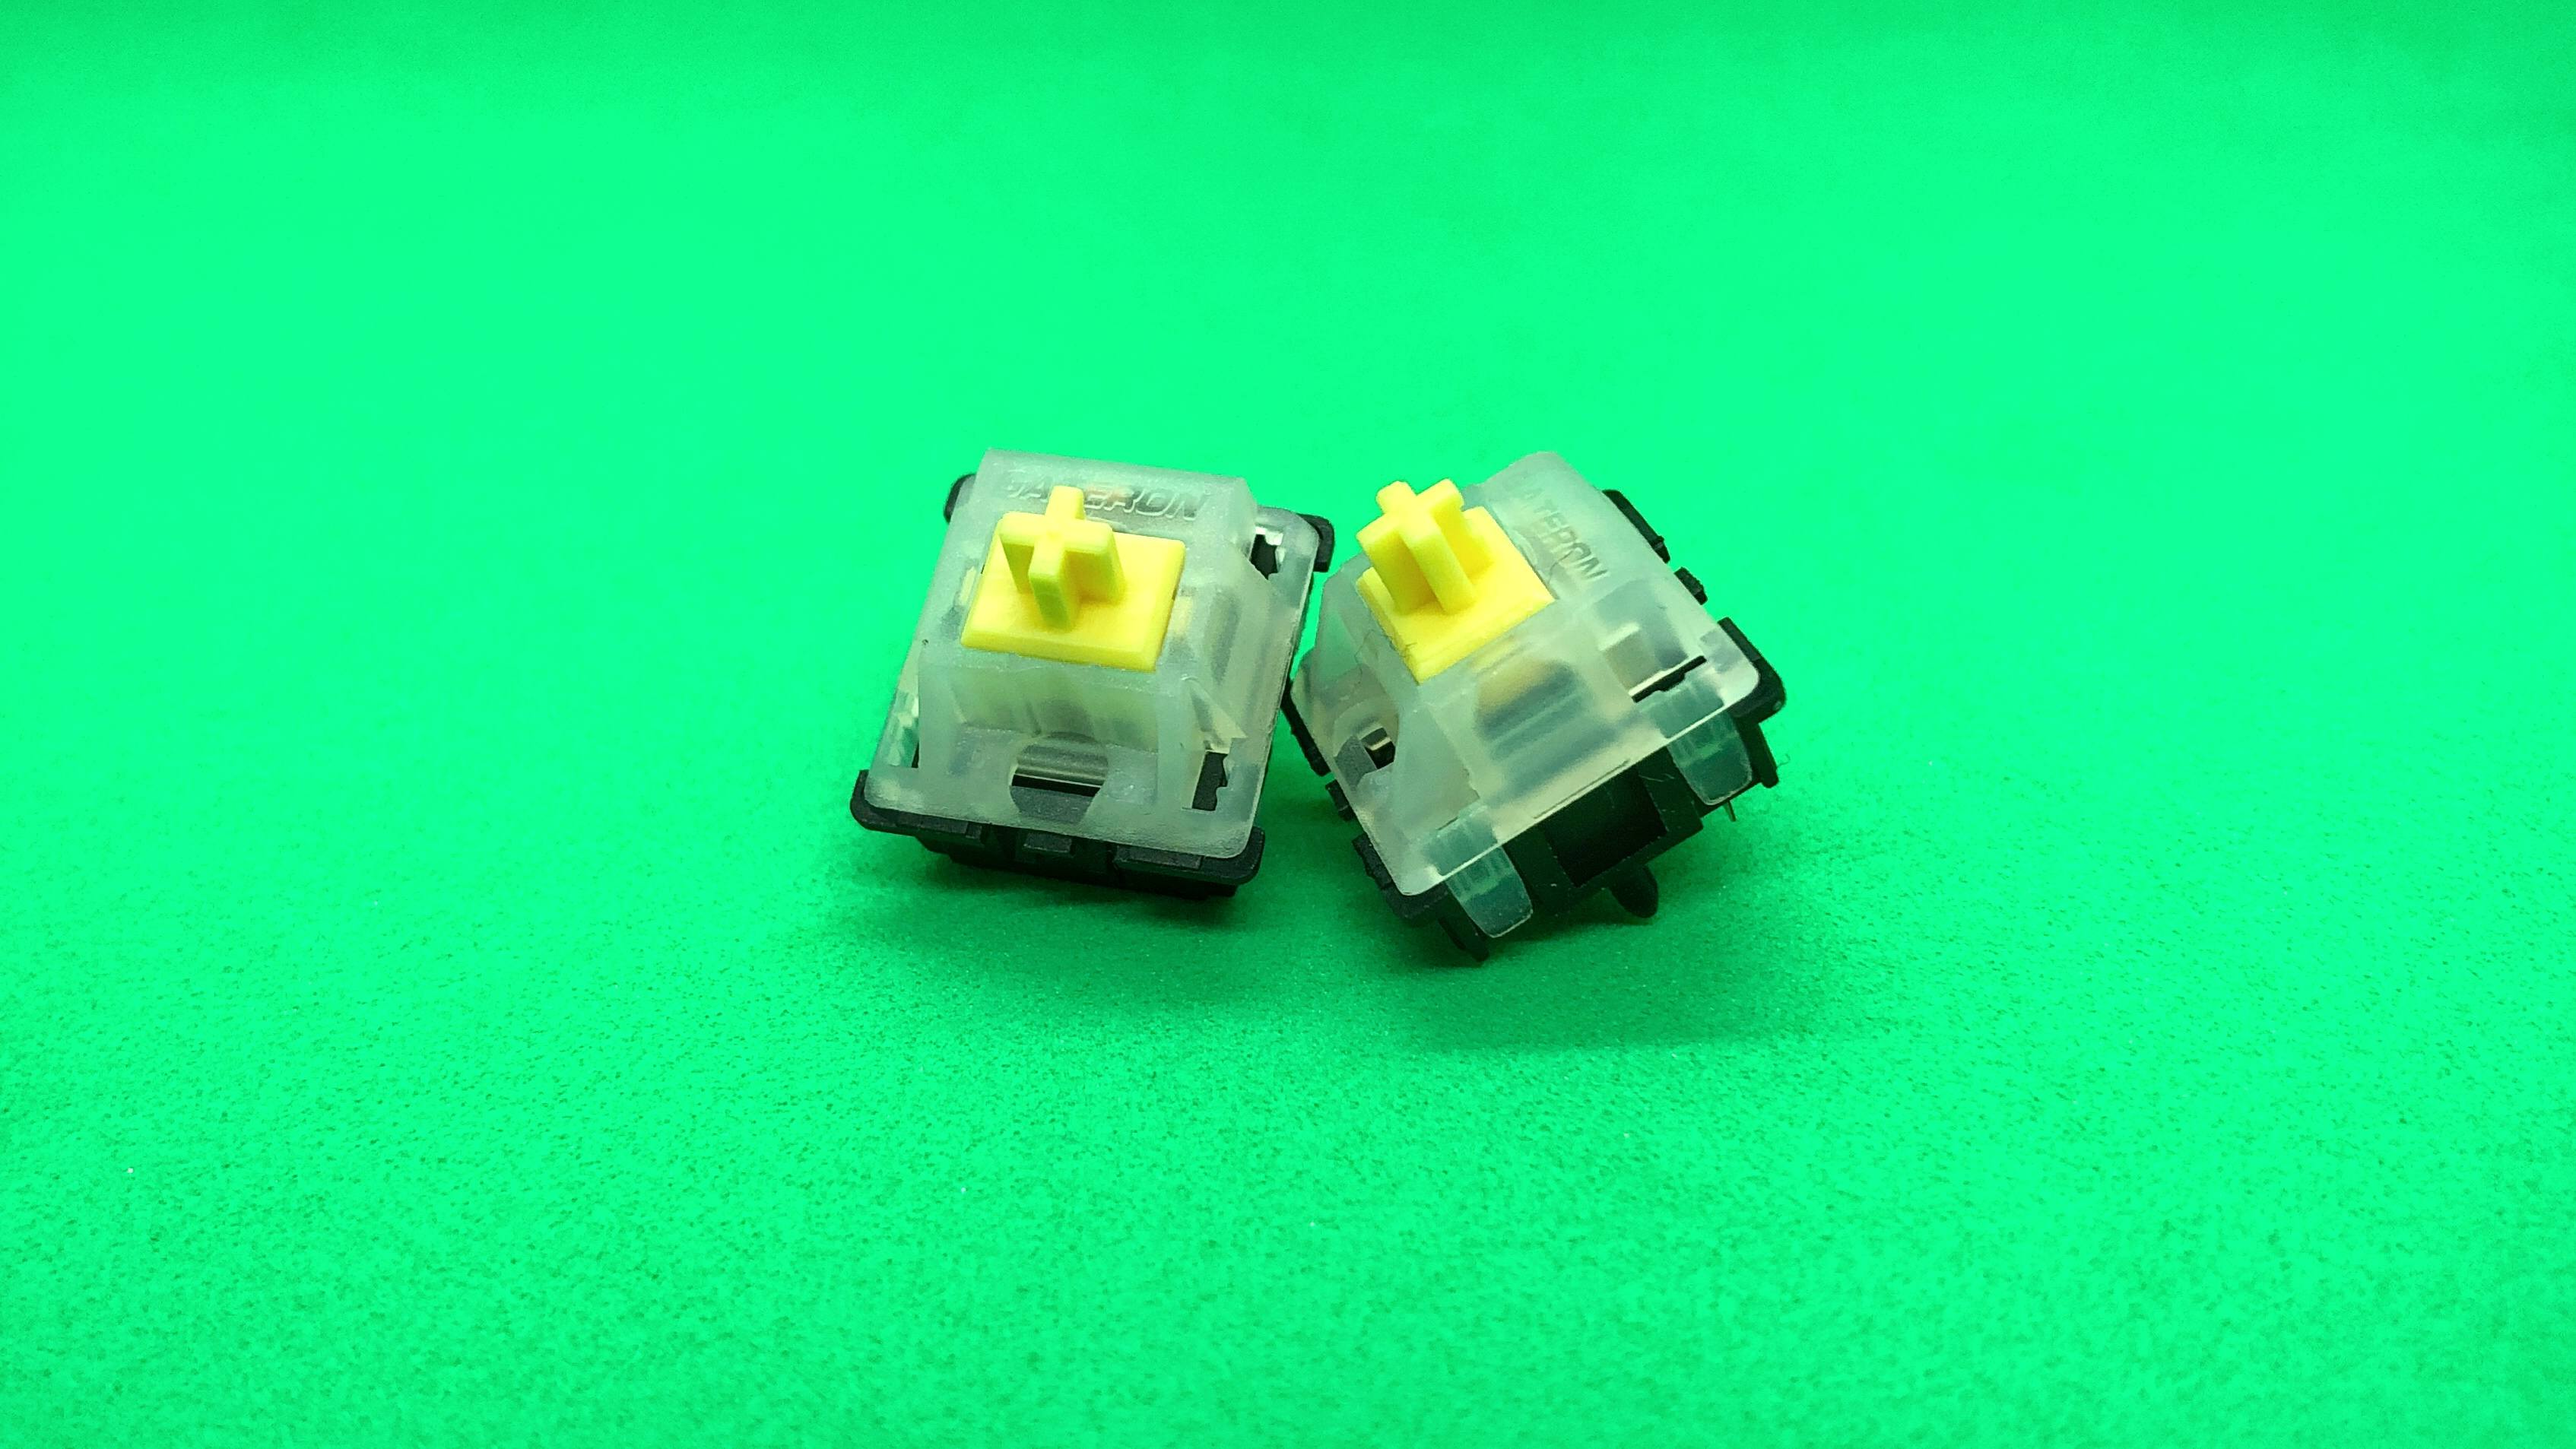 Gateron Yellow - The Balanced Option